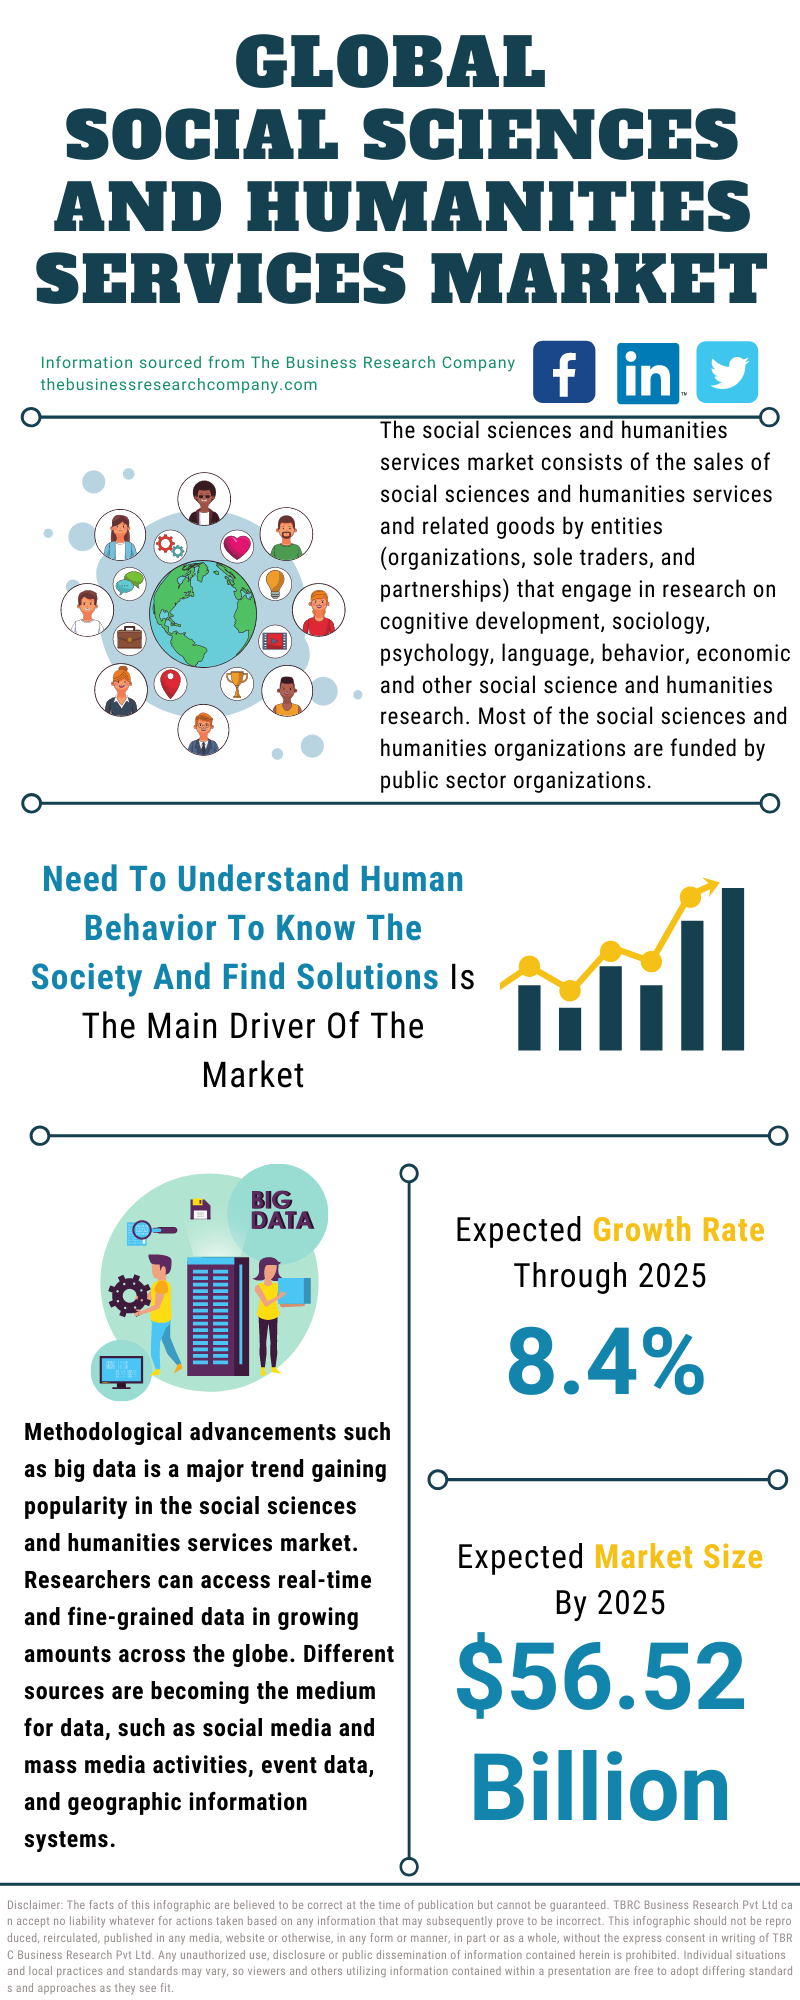 Social Sciences And Humanities Services Market